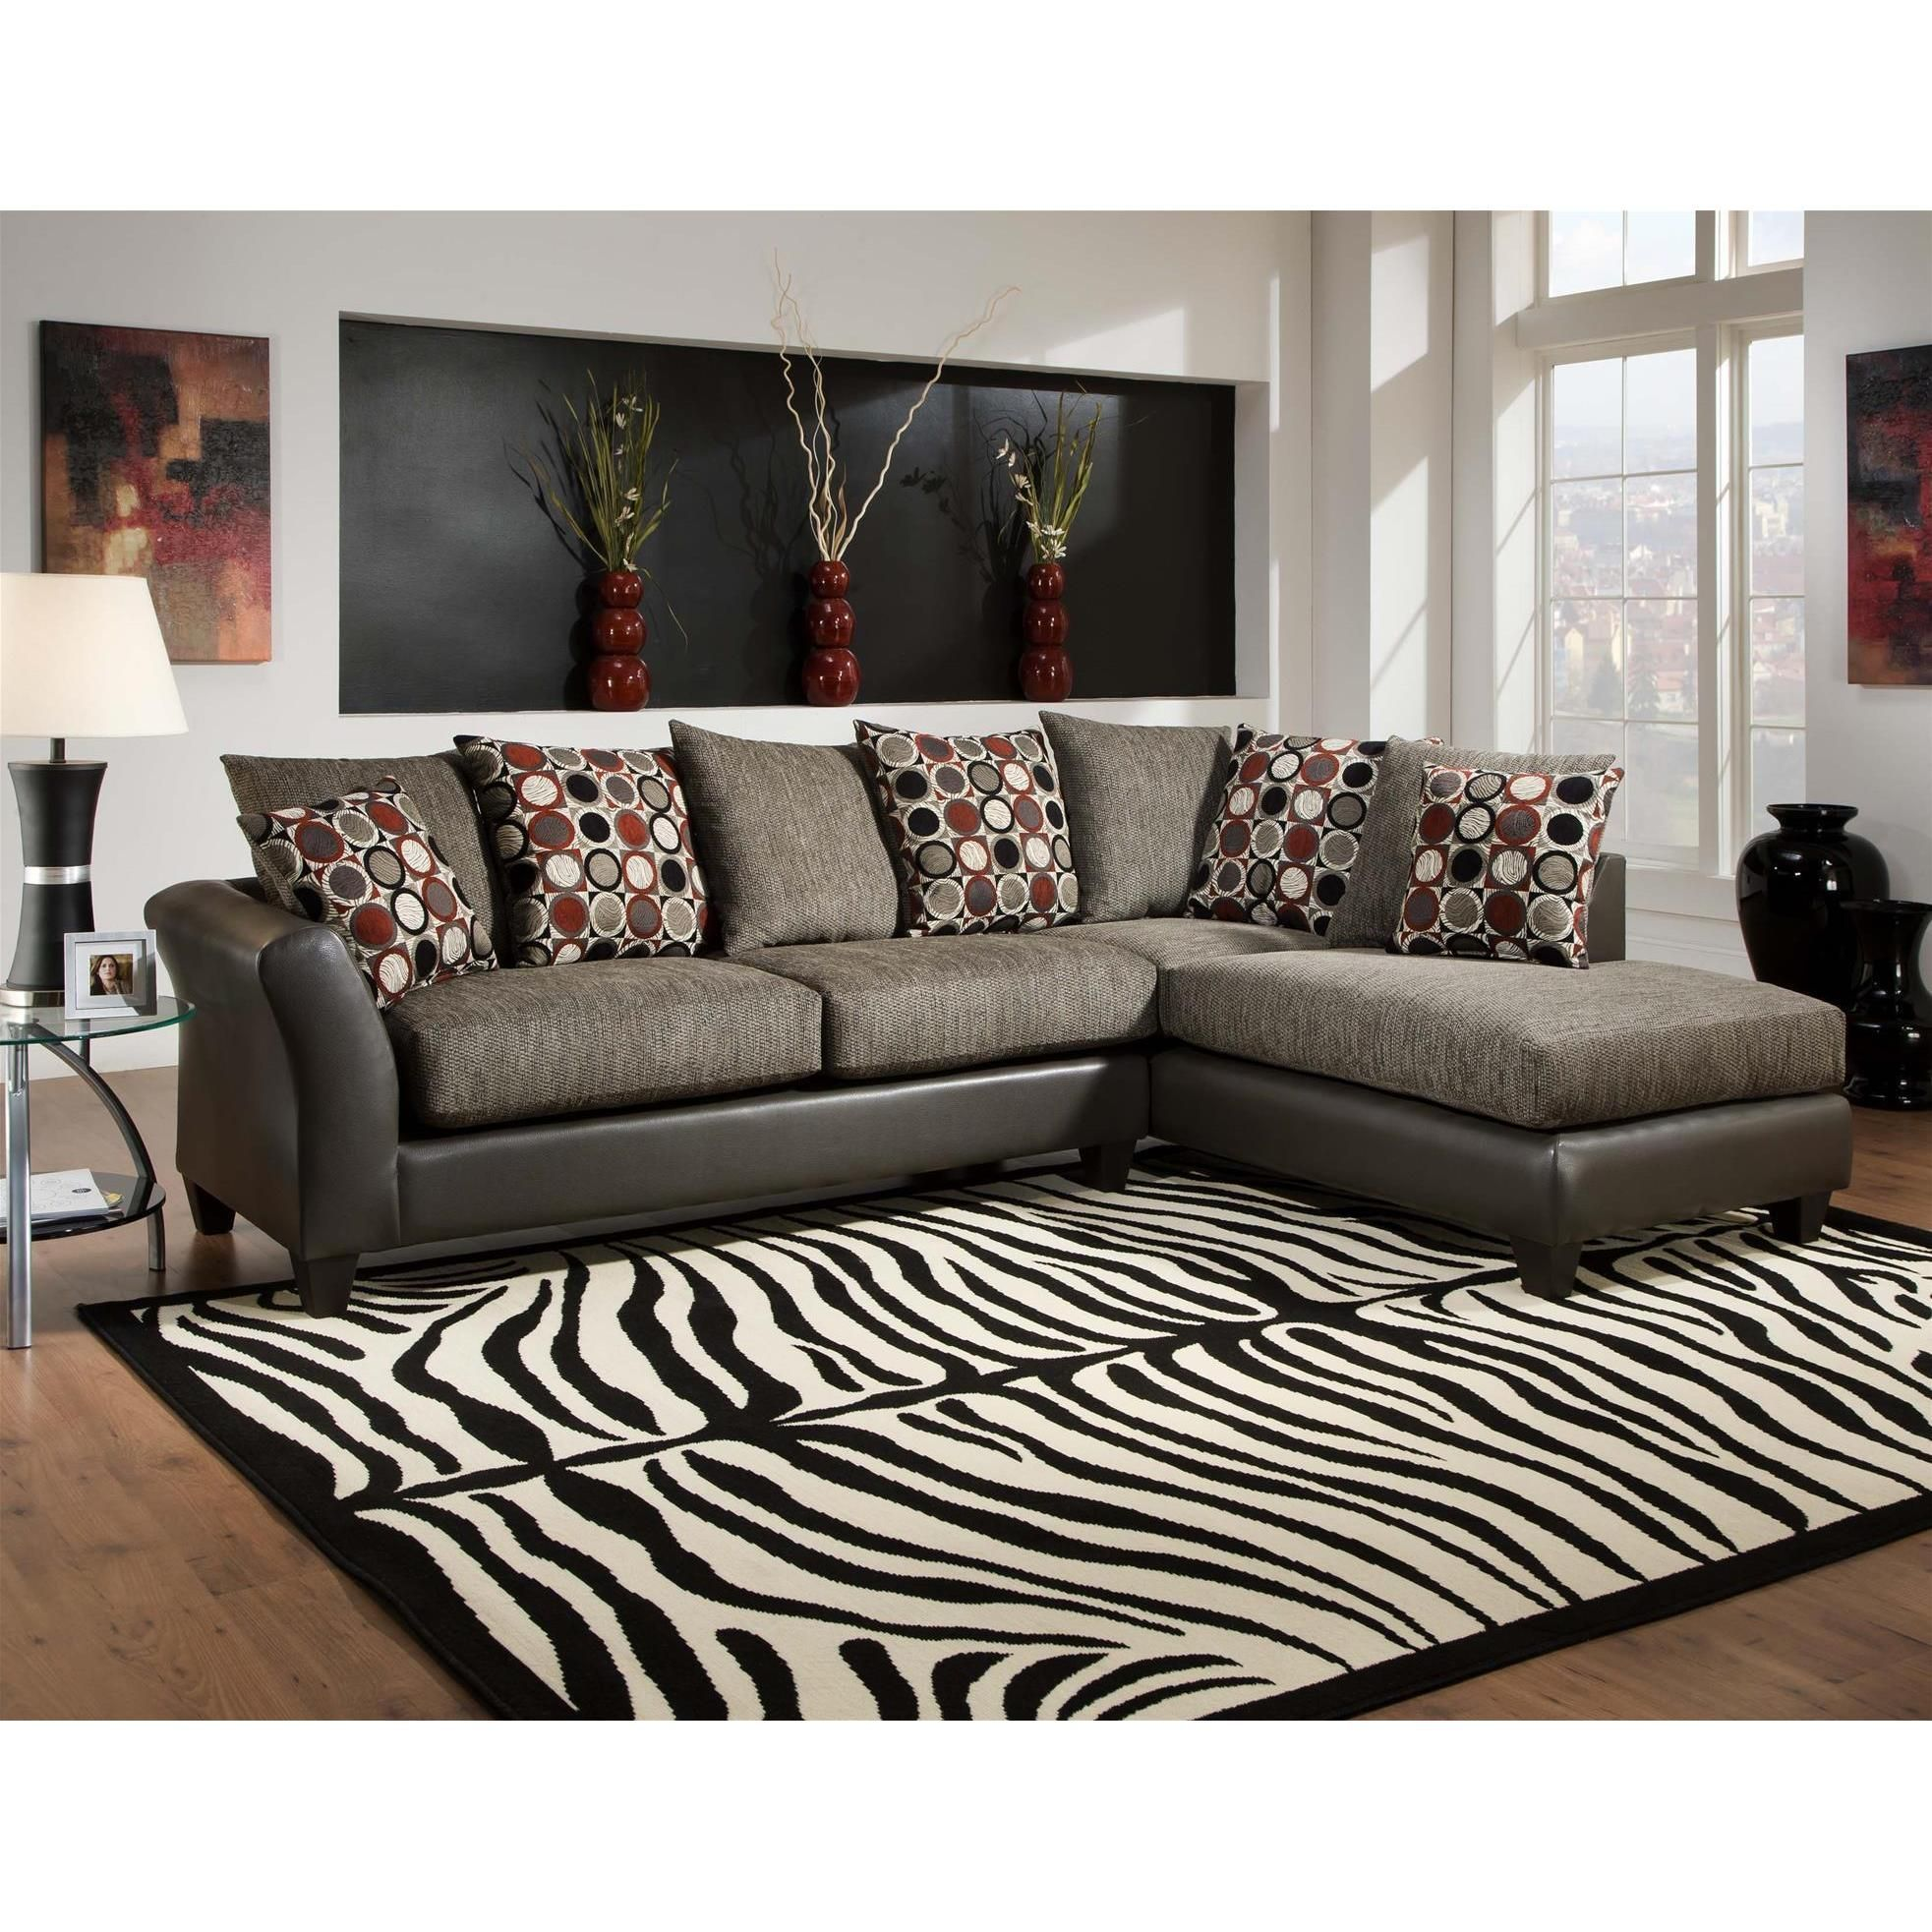 Excellent Sofa Trendz Diana Graphite Gray Two Tone Sectional Diana Beatyapartments Chair Design Images Beatyapartmentscom